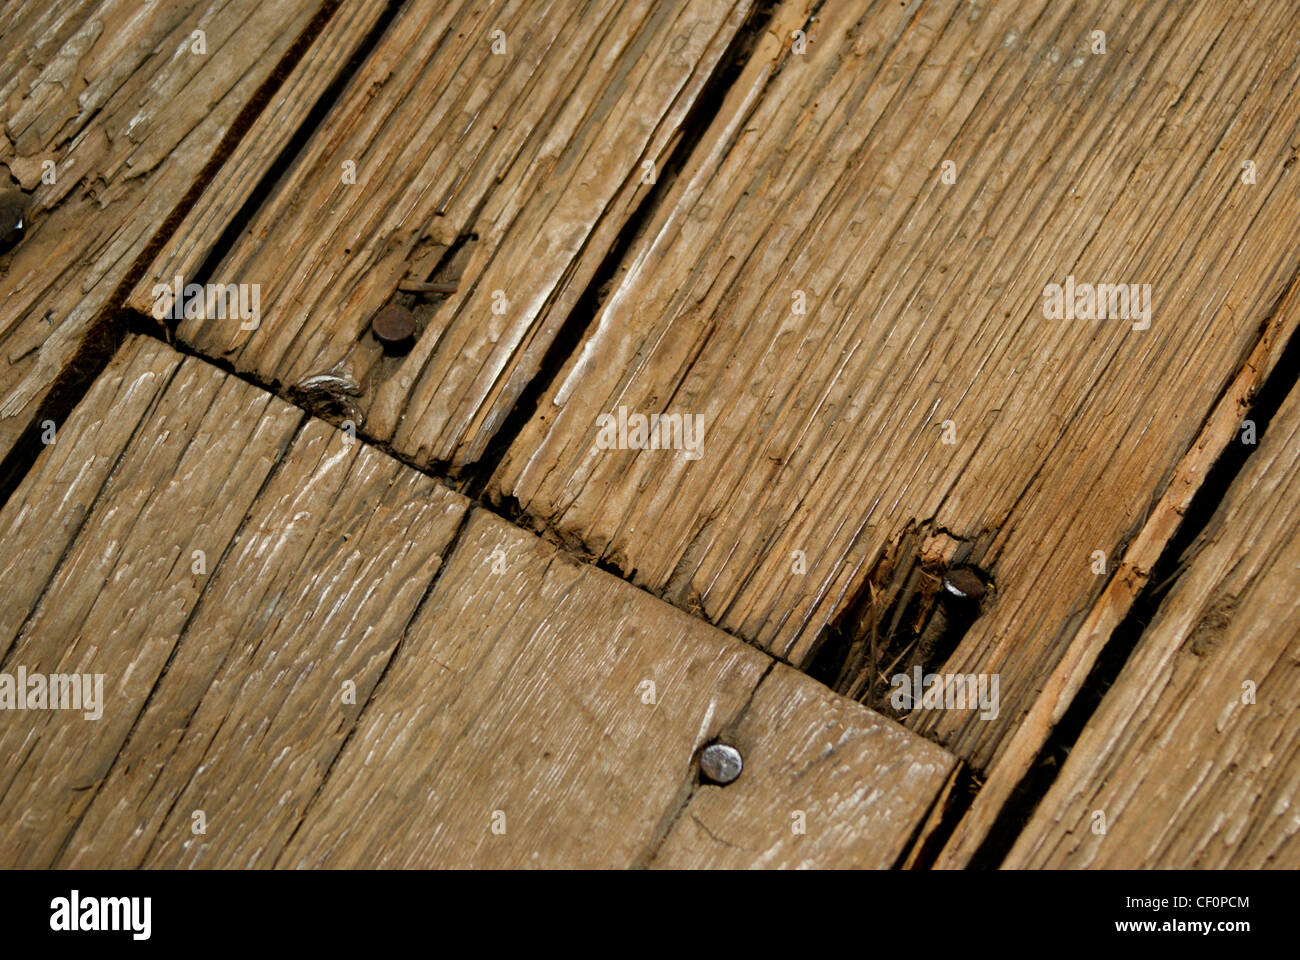 Old wood floor with rusty nails Stock Photo, Royalty Free ...